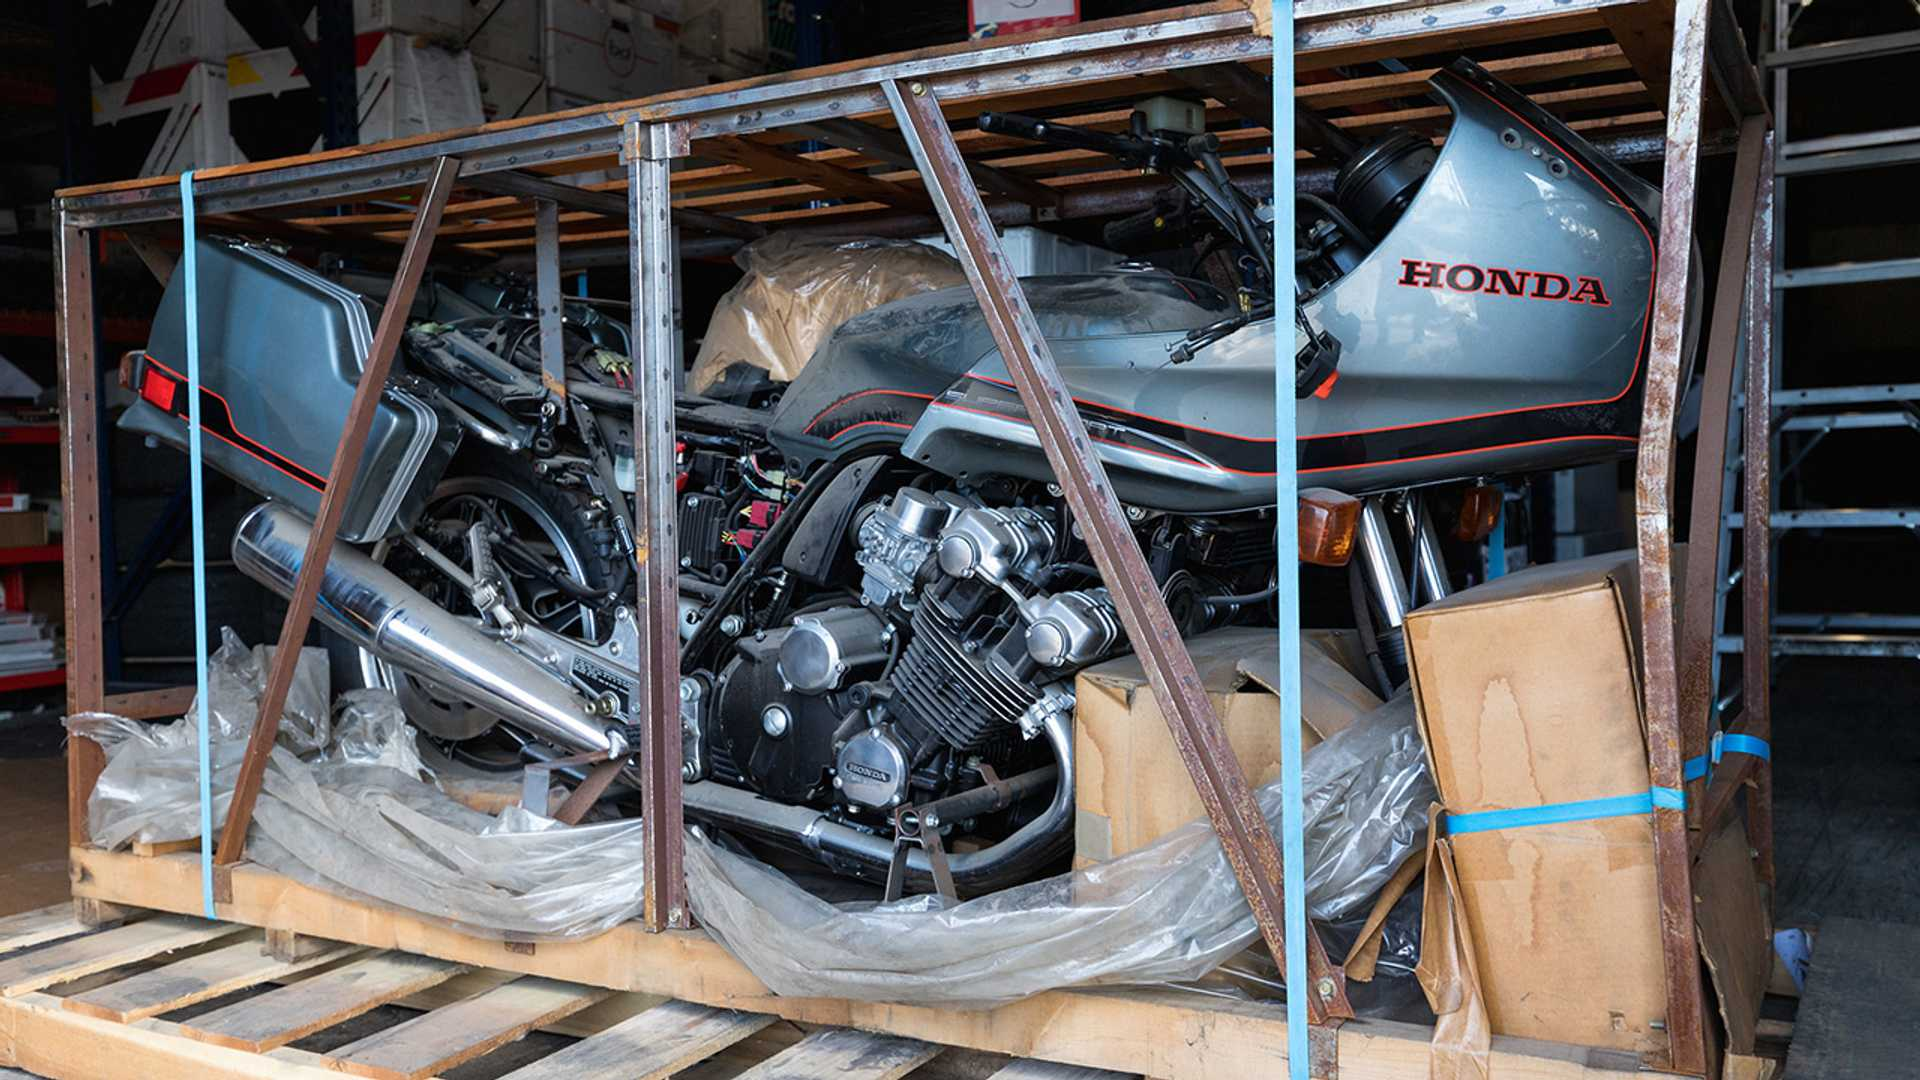 hight resolution of the 1981 honda cbx shows up at an auction once more